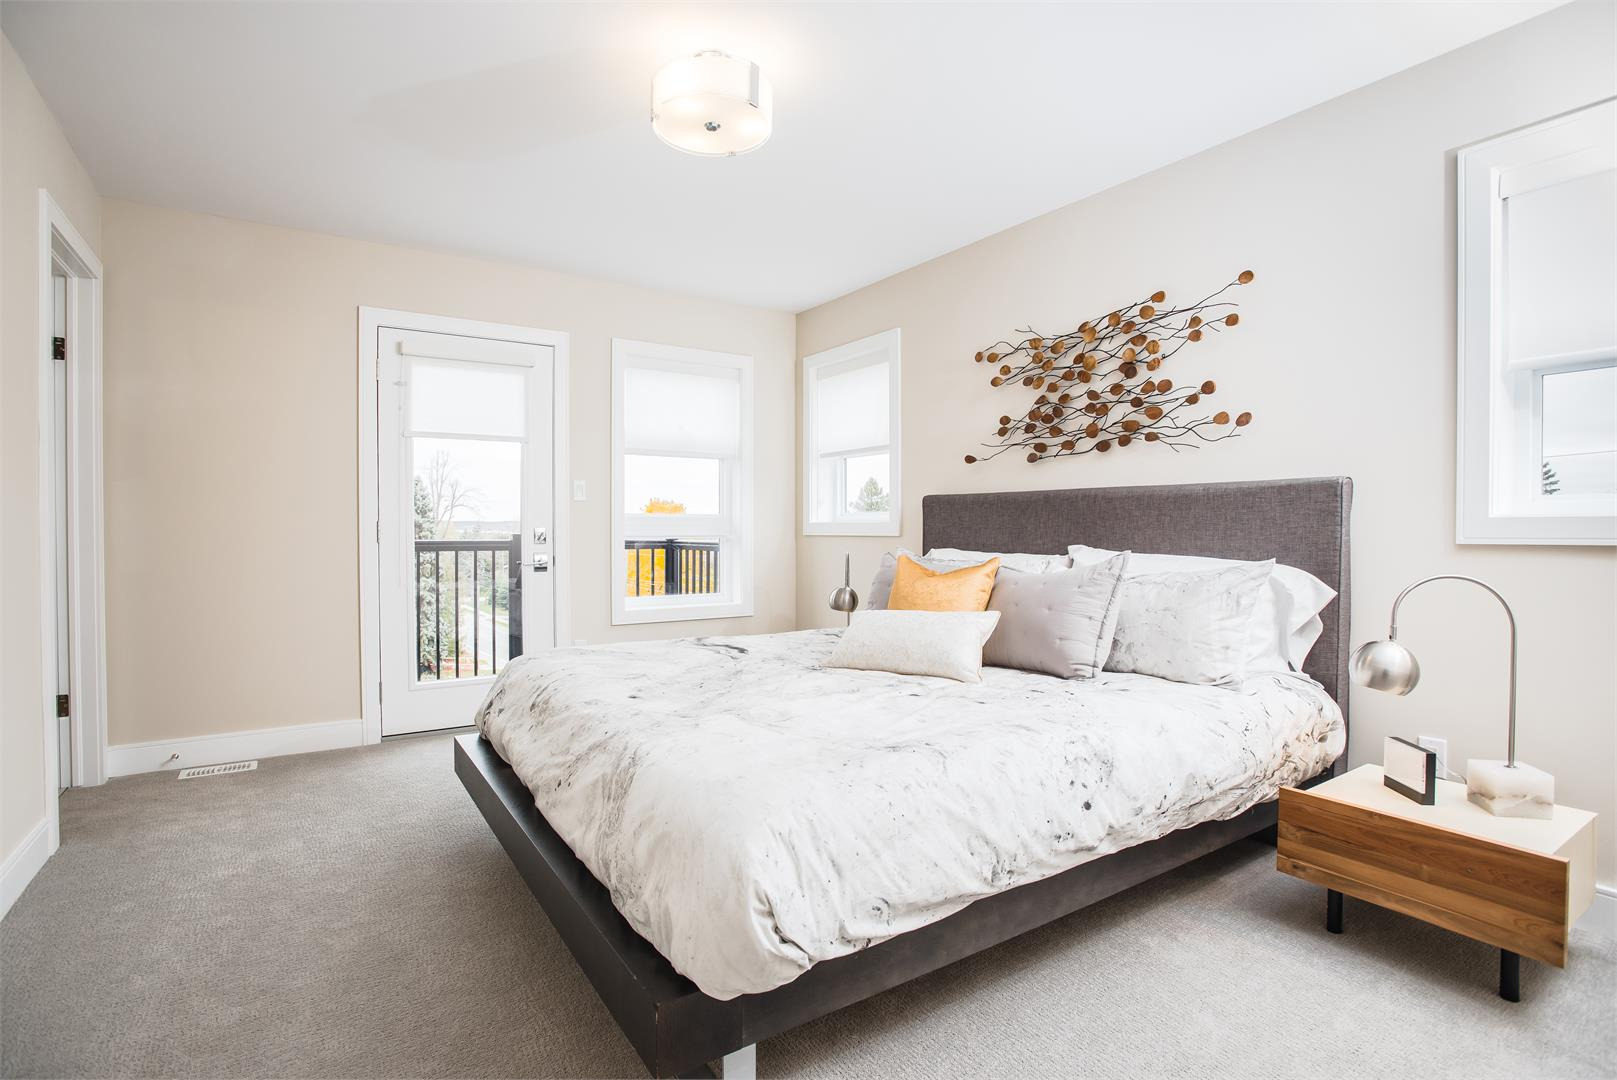 Gallery Towns Master Bedroom, Guelph